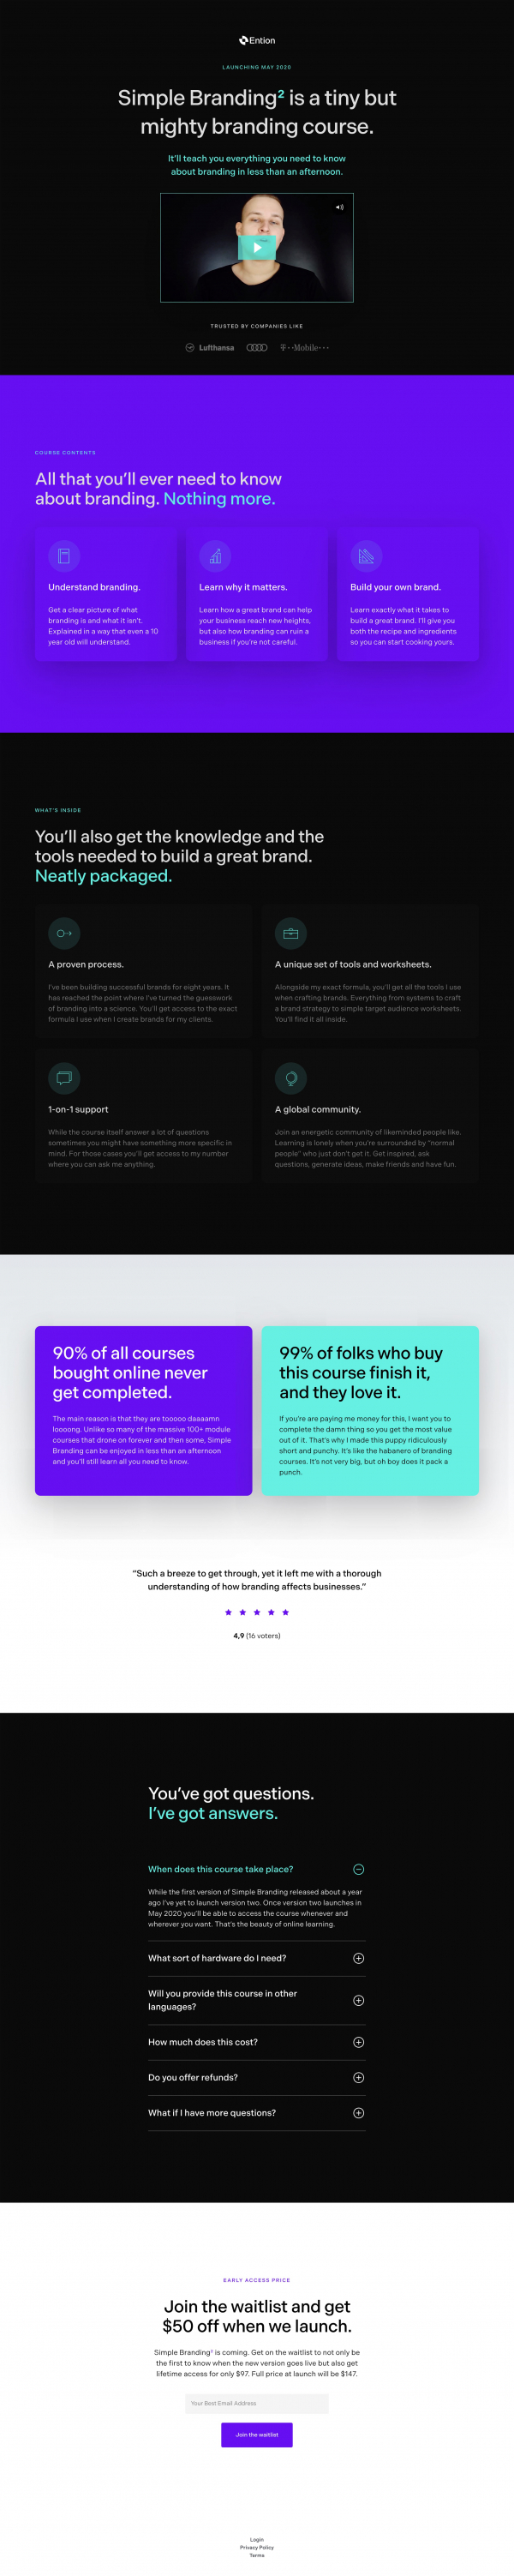 Website Inspiration: Simply Branding Course by Ention